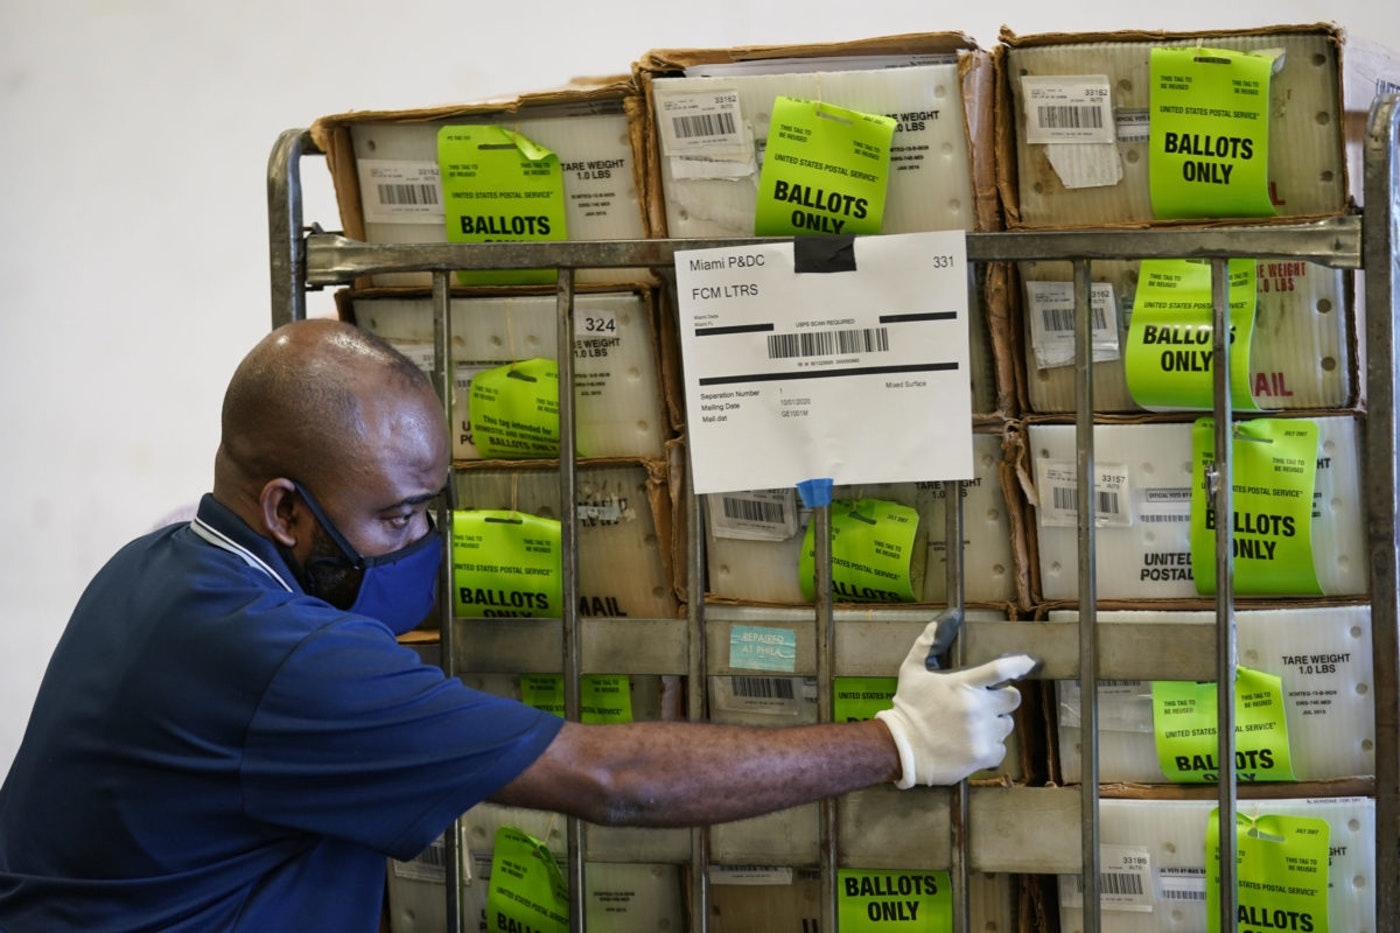 Postmaster General Louis DeJoy was sued over his service cuts at the USPS. In a settlement, he agreed to undo all service changes nationwide.